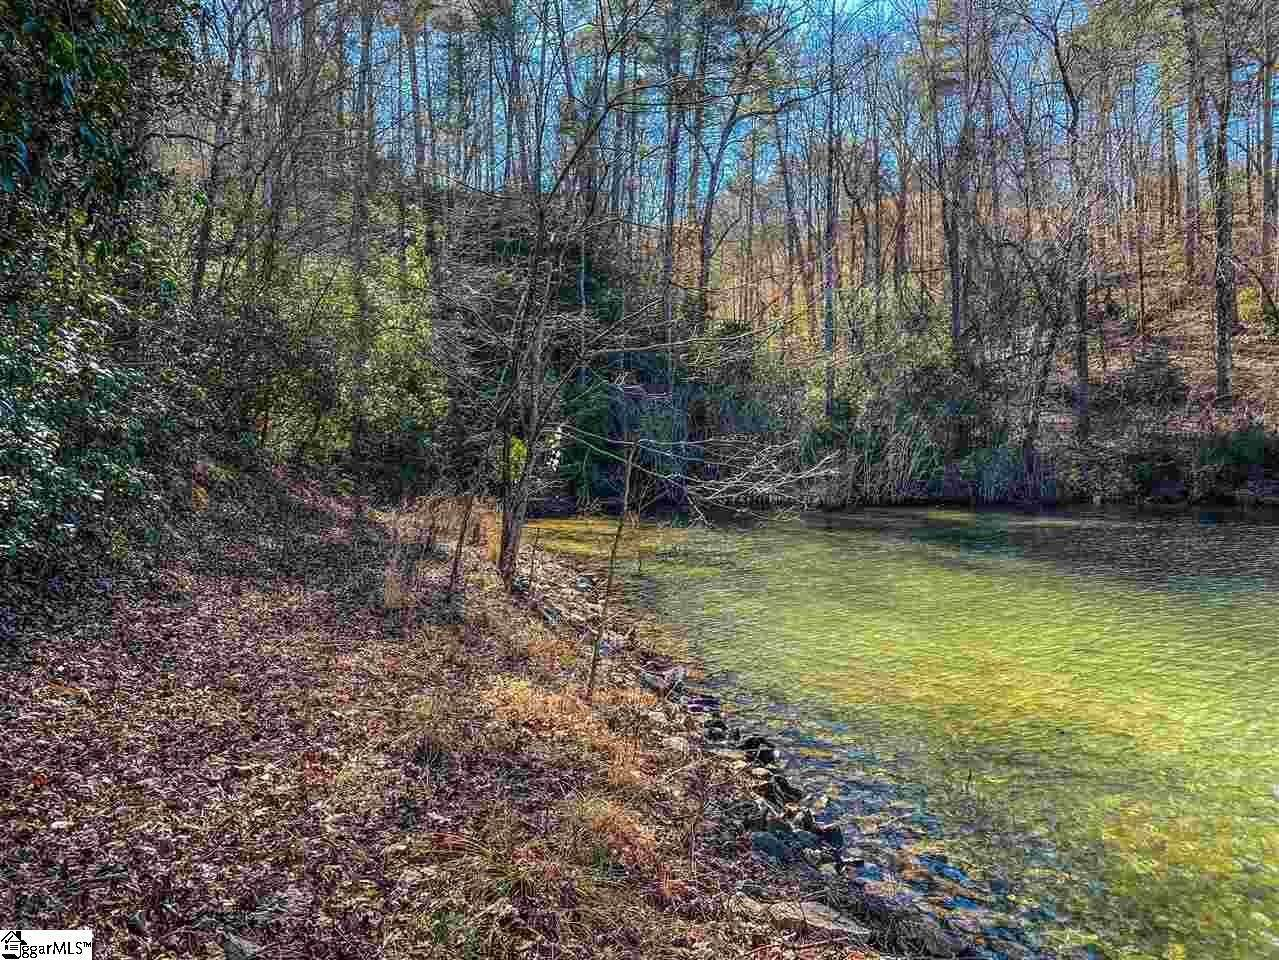 7. Residential Lot for Sale at The Cliffs At Keowee Falls North, Salem, SC 29676